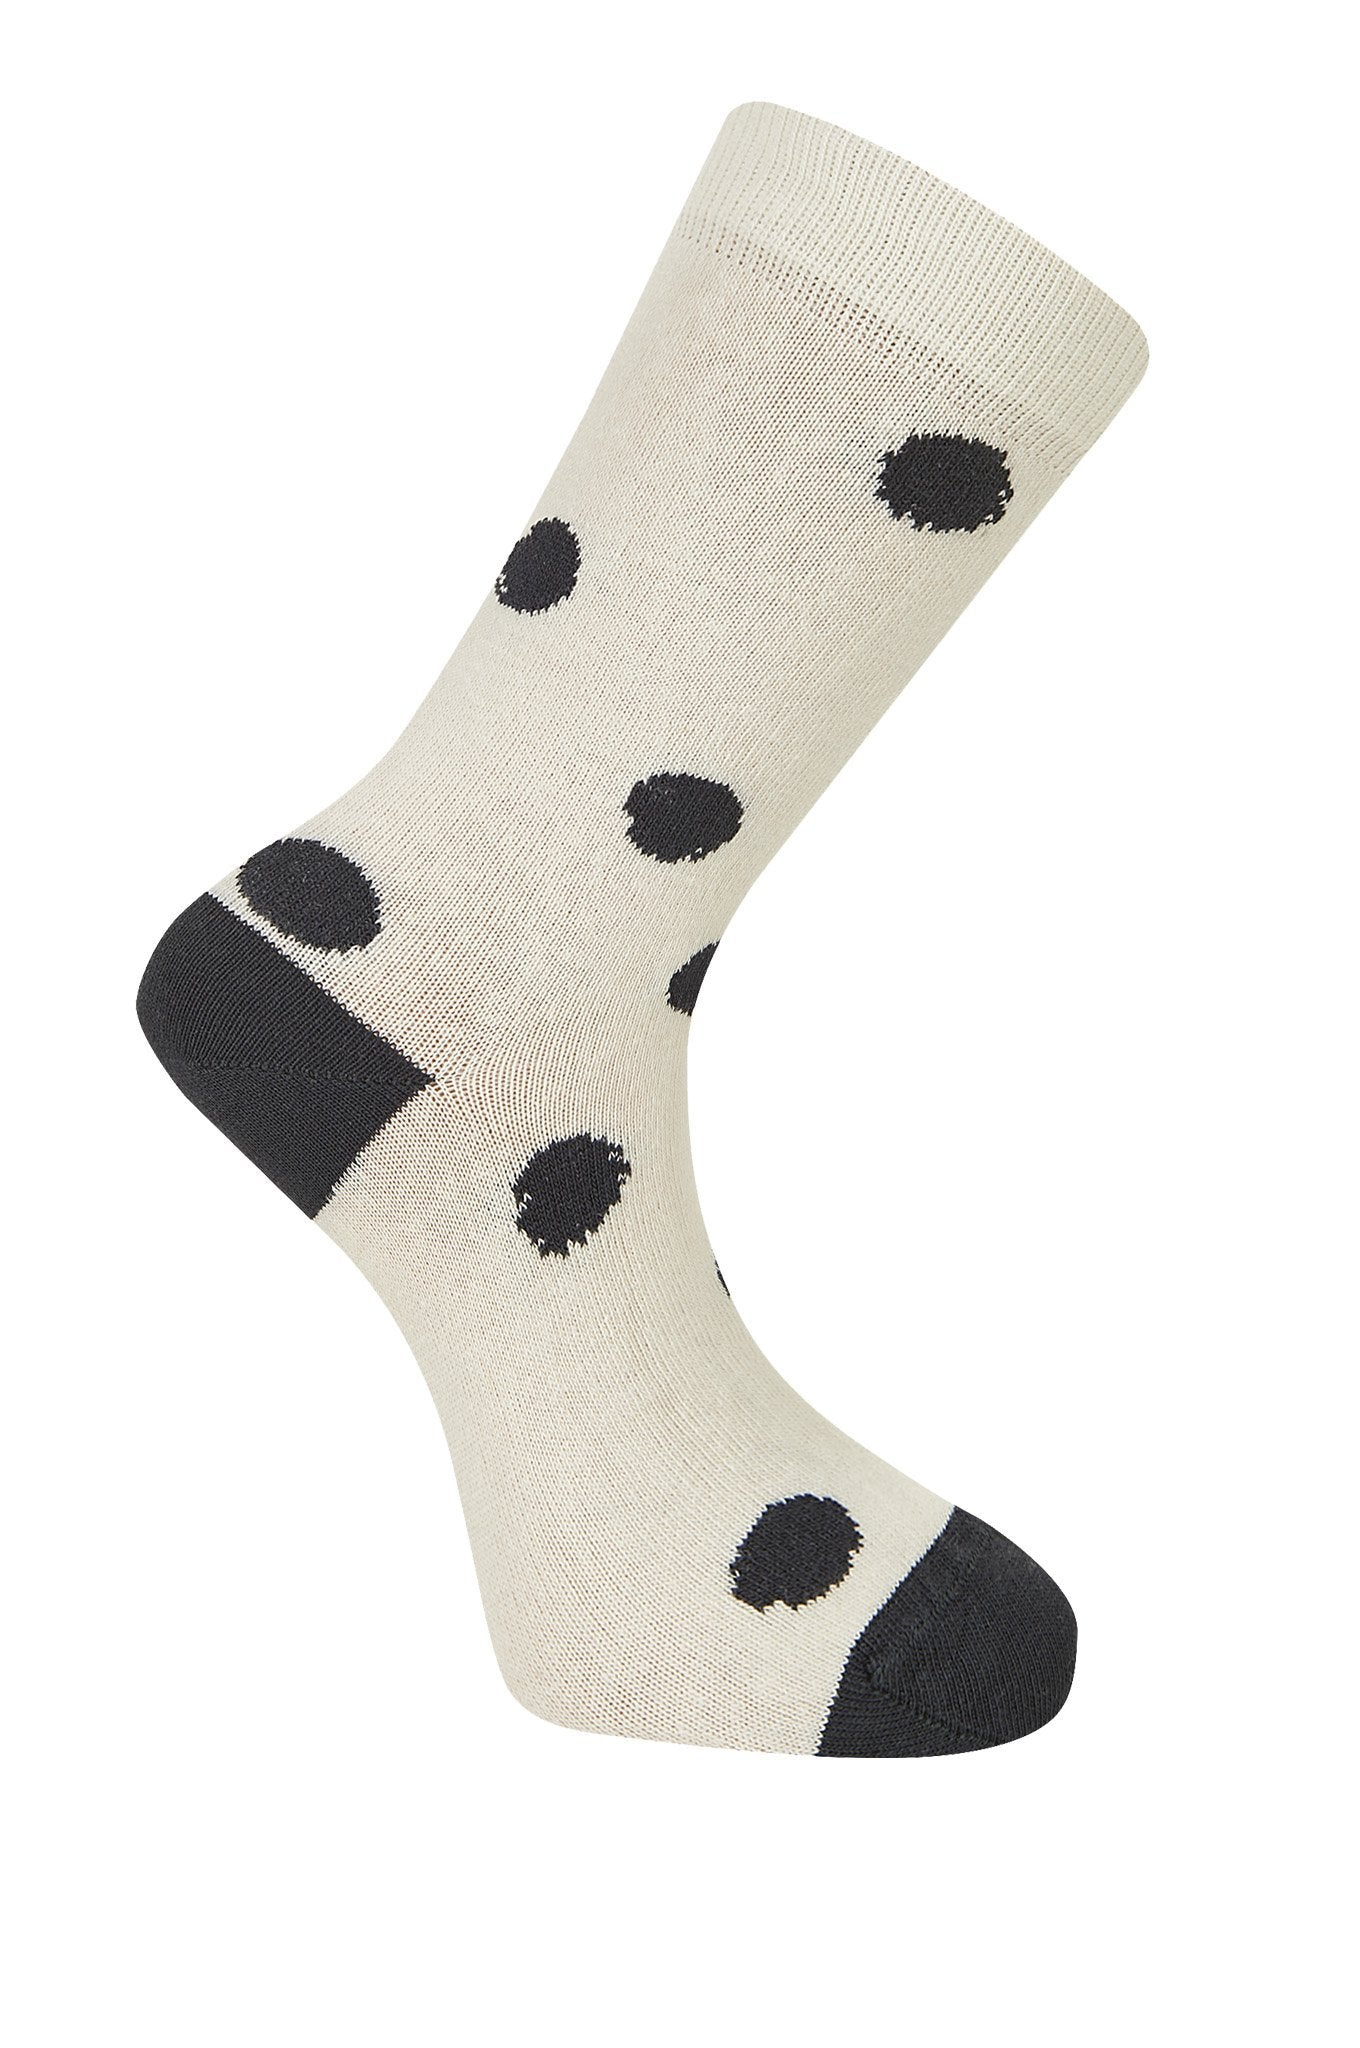 KUSAMA DOT Oatmeal & Coal Organic Cotton Socks - Komodo Fashion